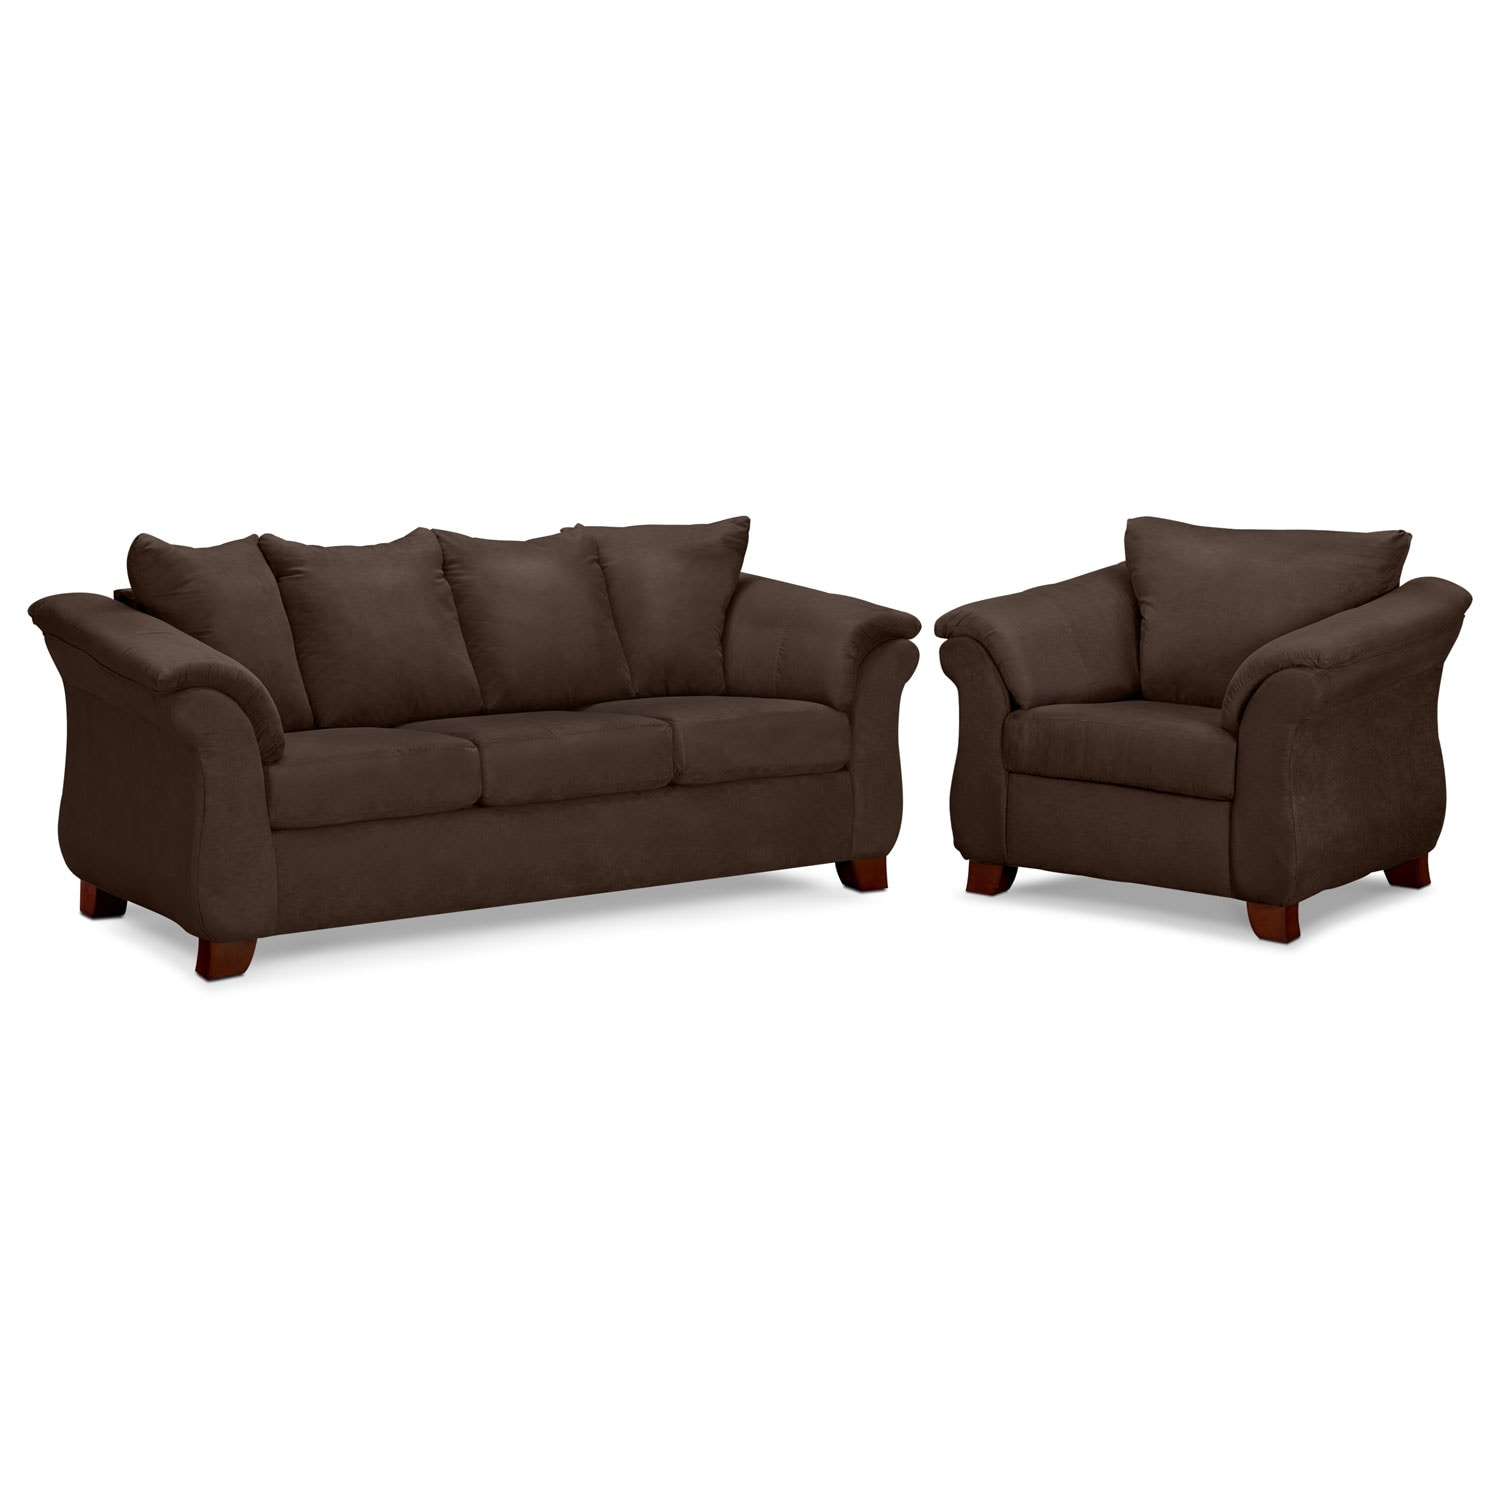 Living Room Furniture - Adrian Chocolate 2 Pc. Living Room w/ Chair